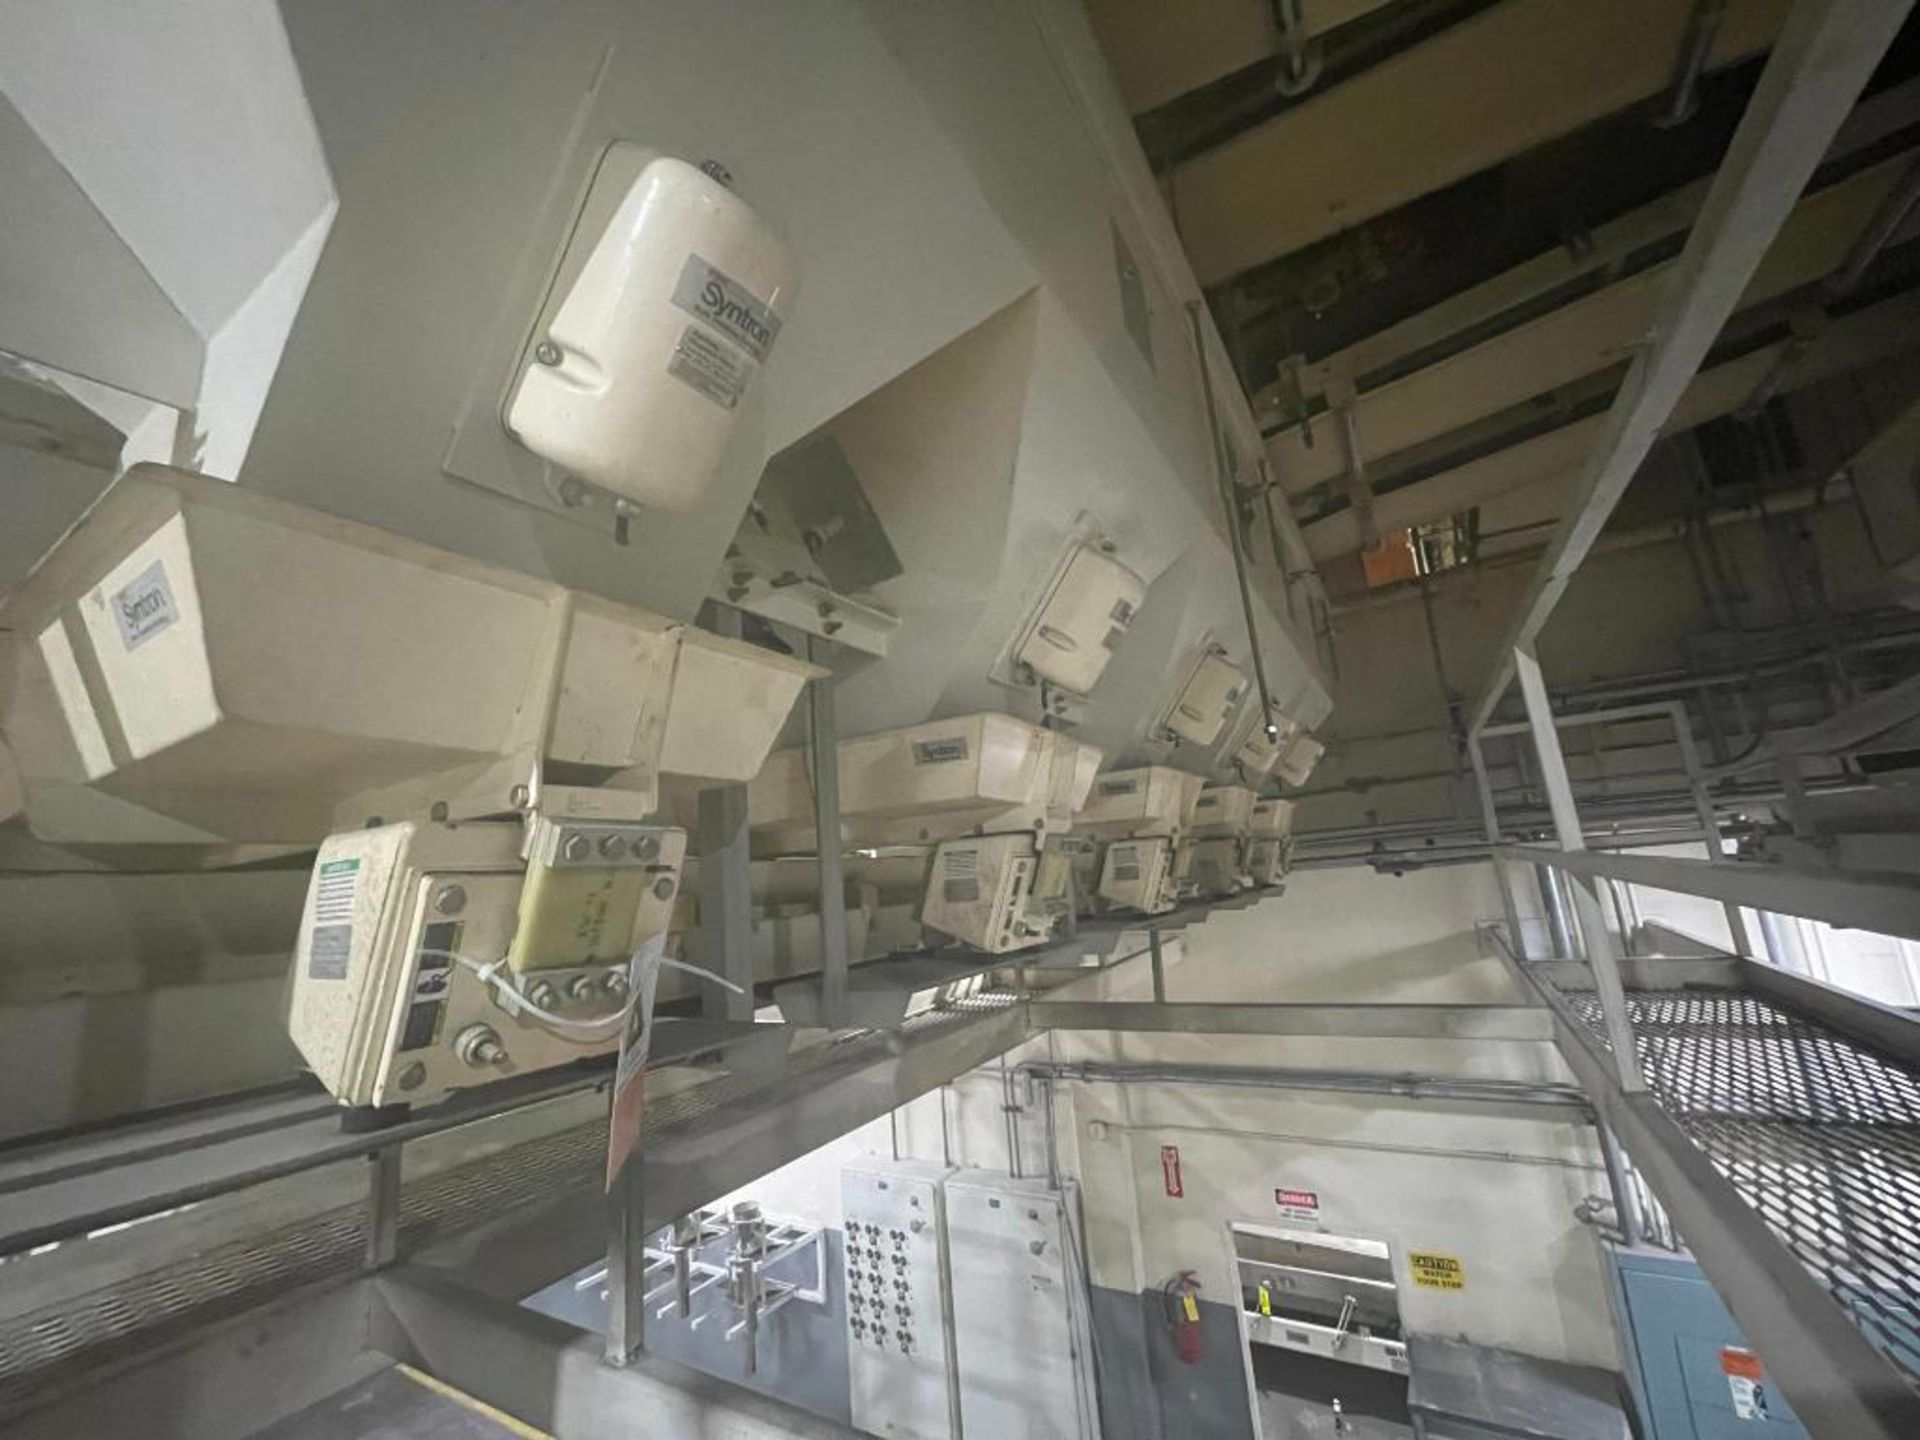 Aseeco 5-bin blending system with 5 Syntron vibratory feeders on bottom - Image 7 of 18